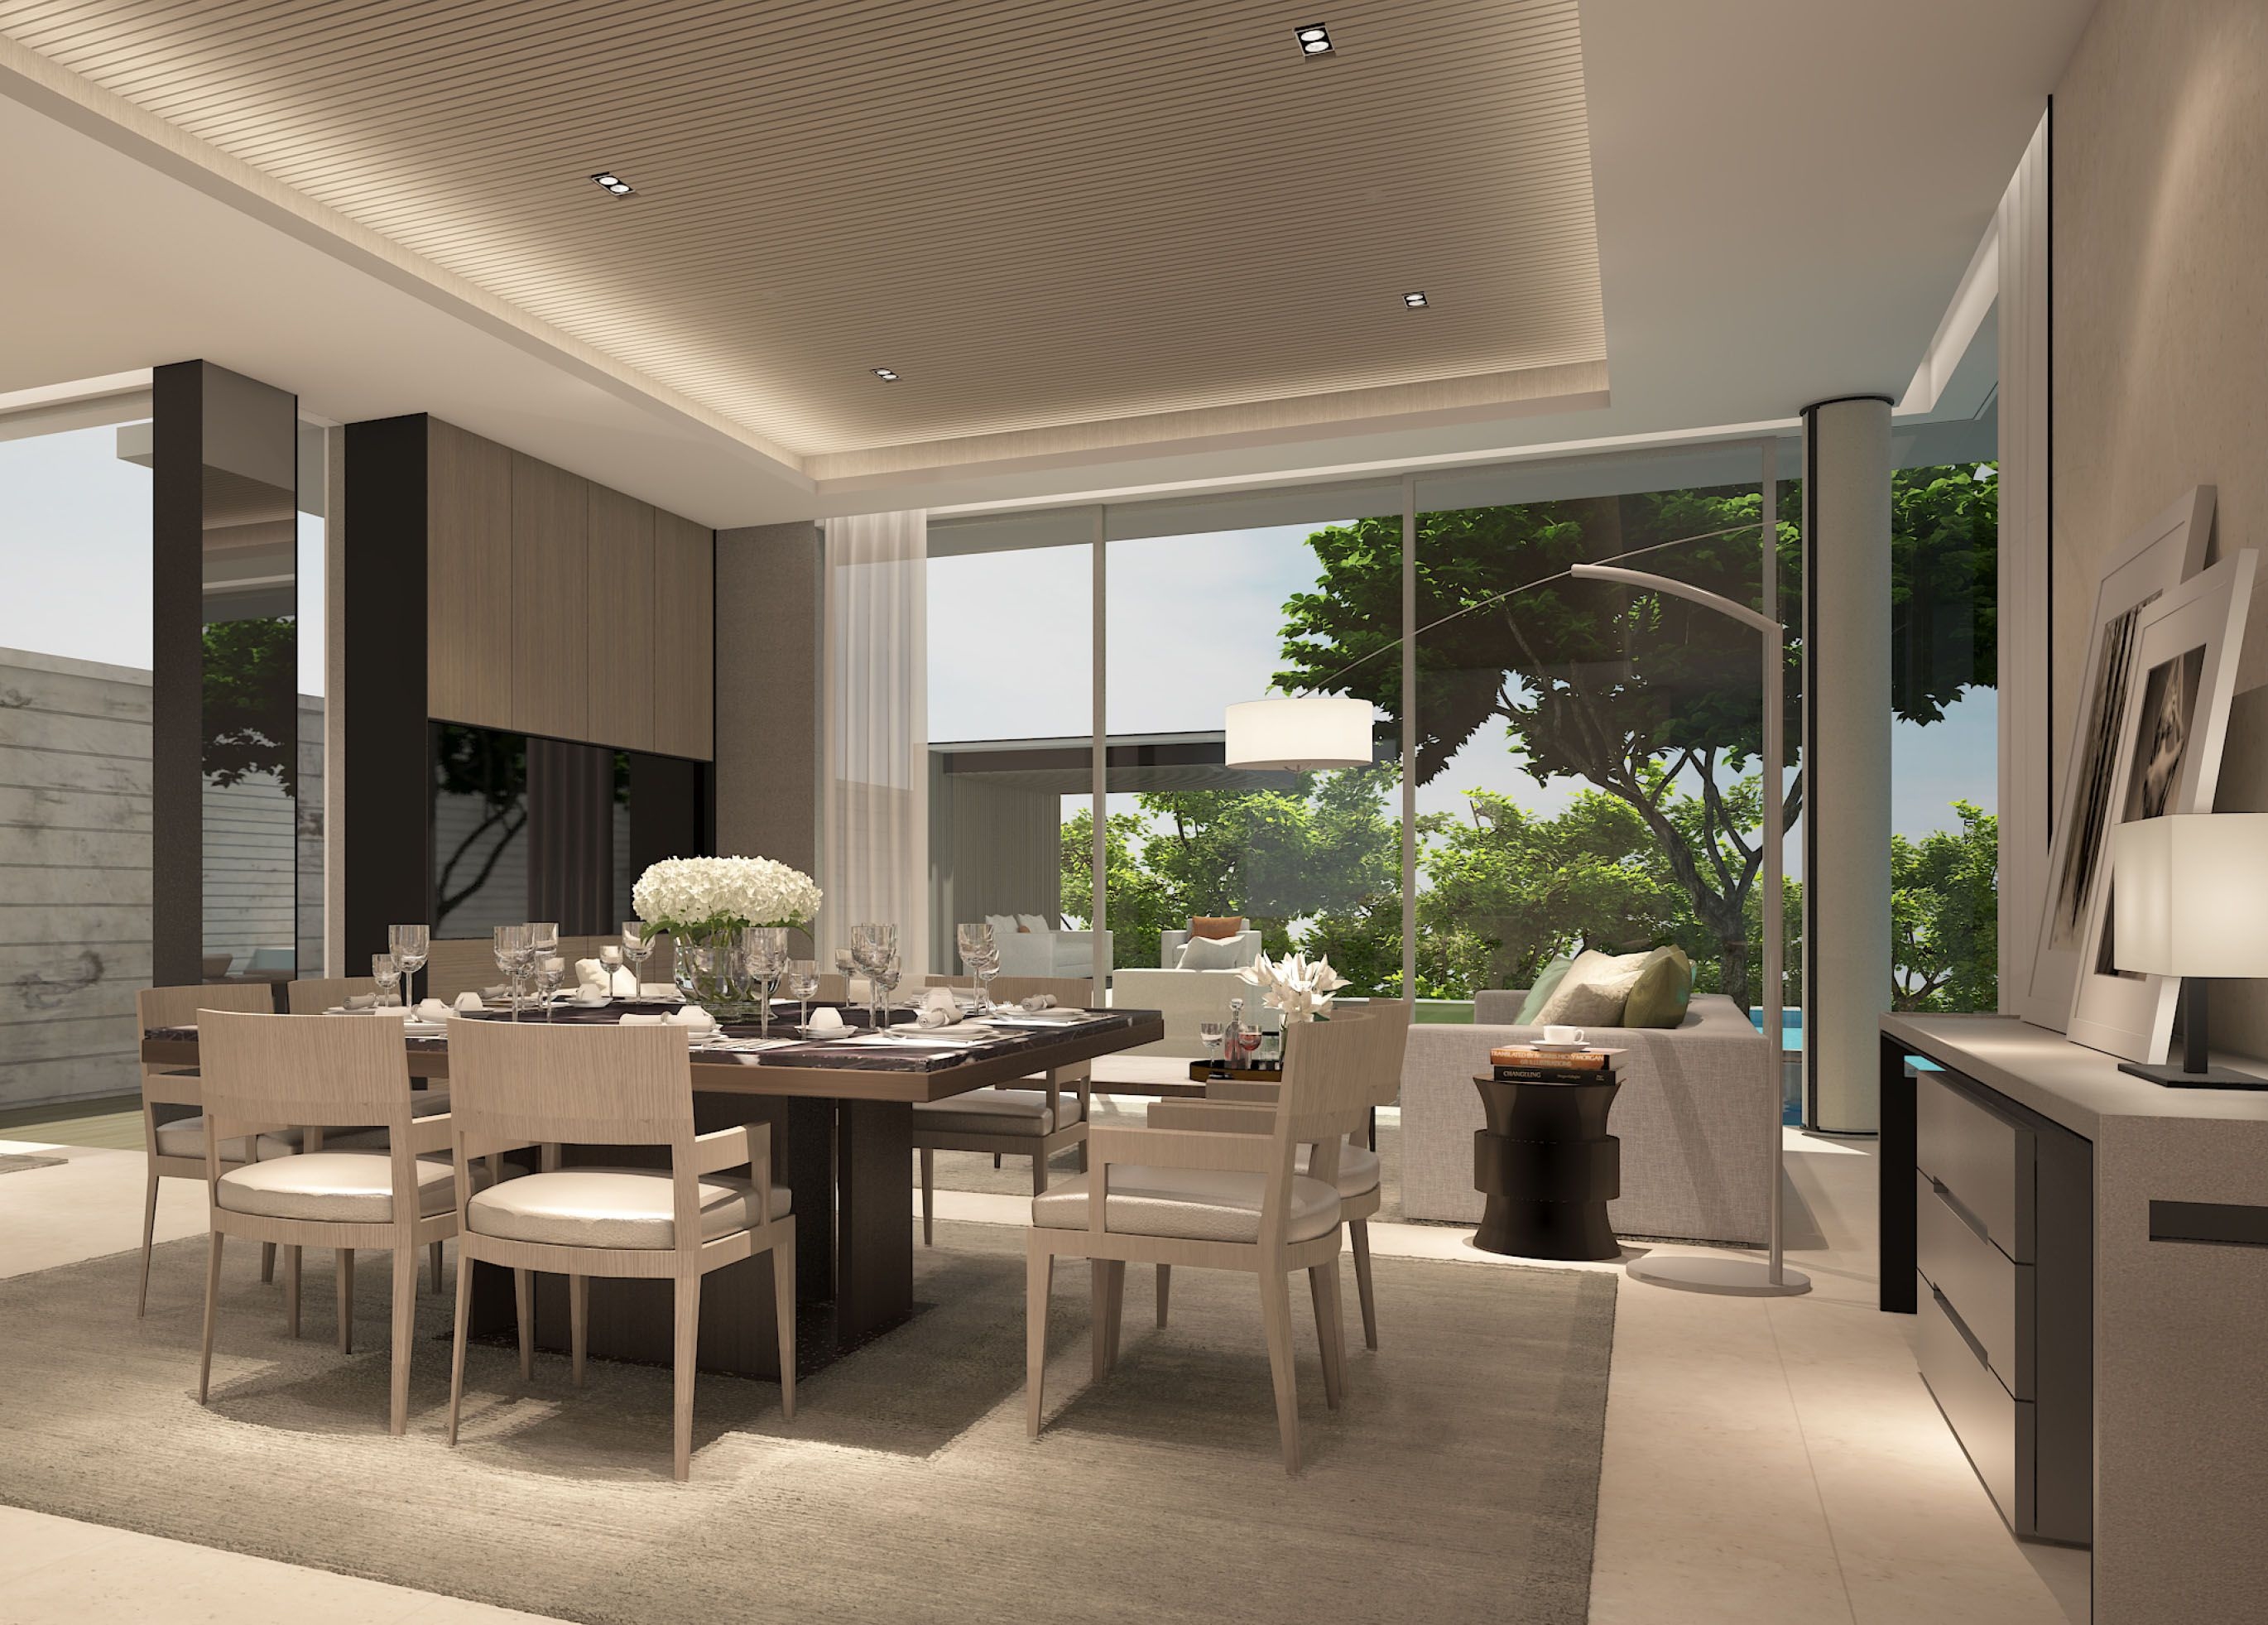 Scda Mixed Use Development Sanya, China Show Villa (Type 3) Lounge